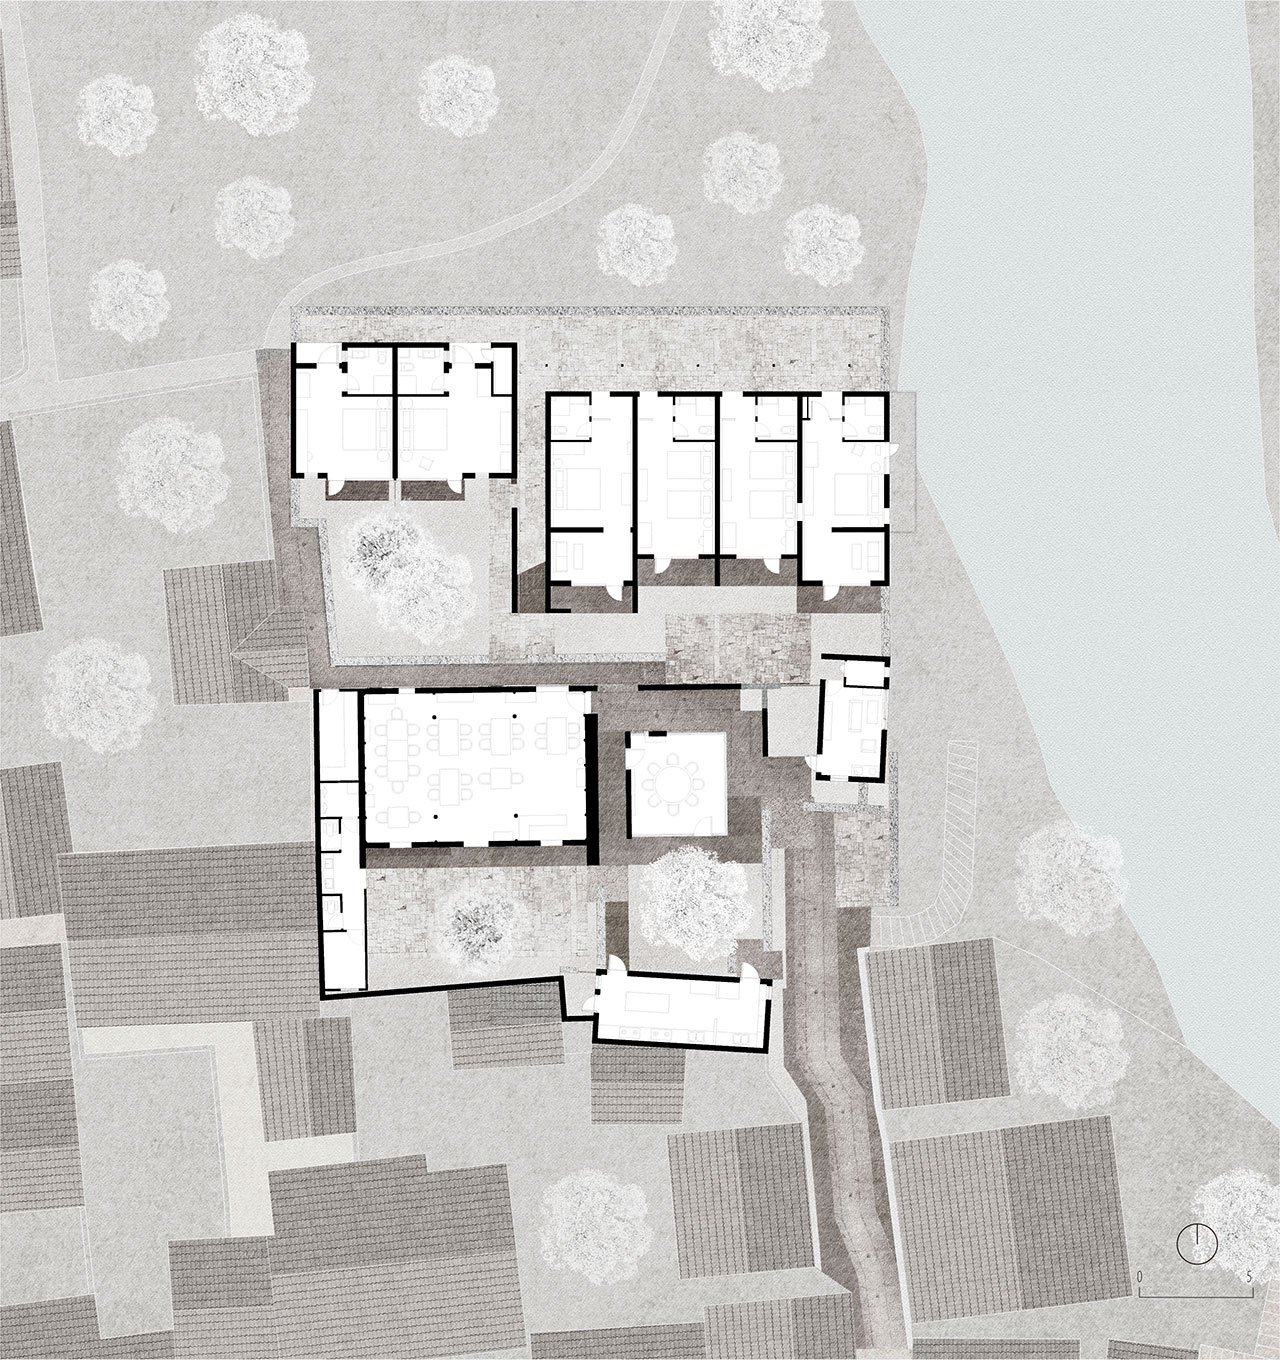 1st-4th courtyard house first floorplan. © genarchitects.